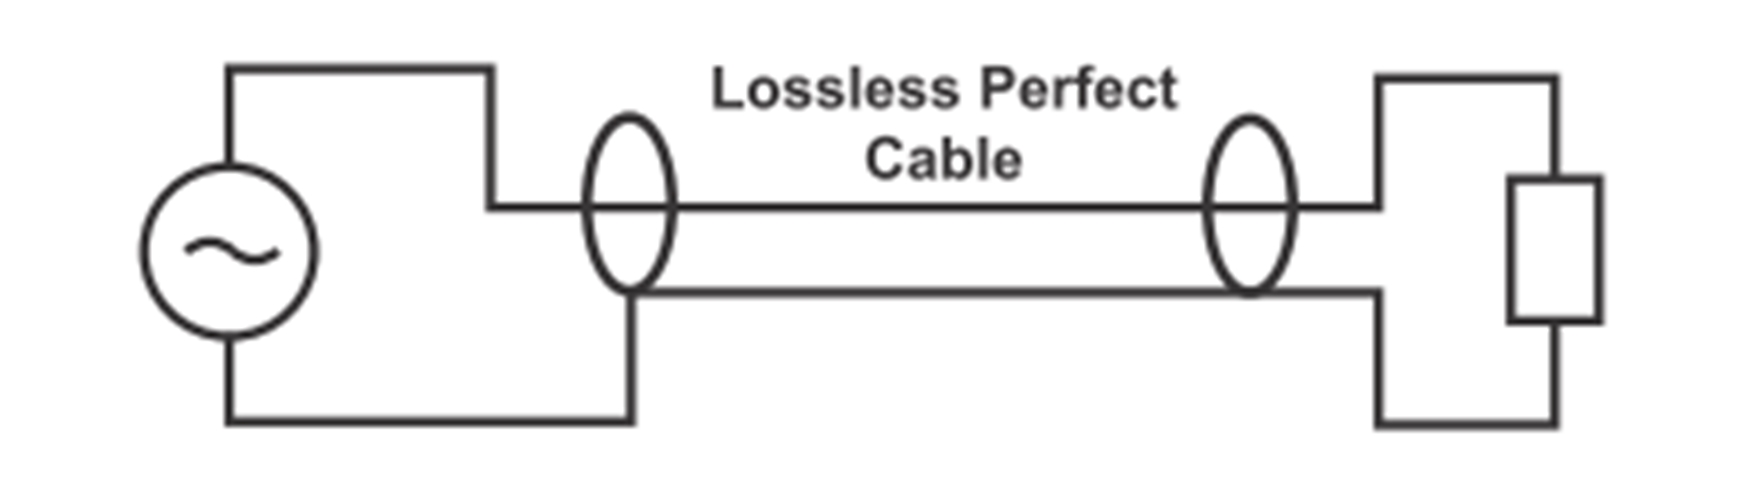 Diagram of maximum voltage error with a perfect source/cable